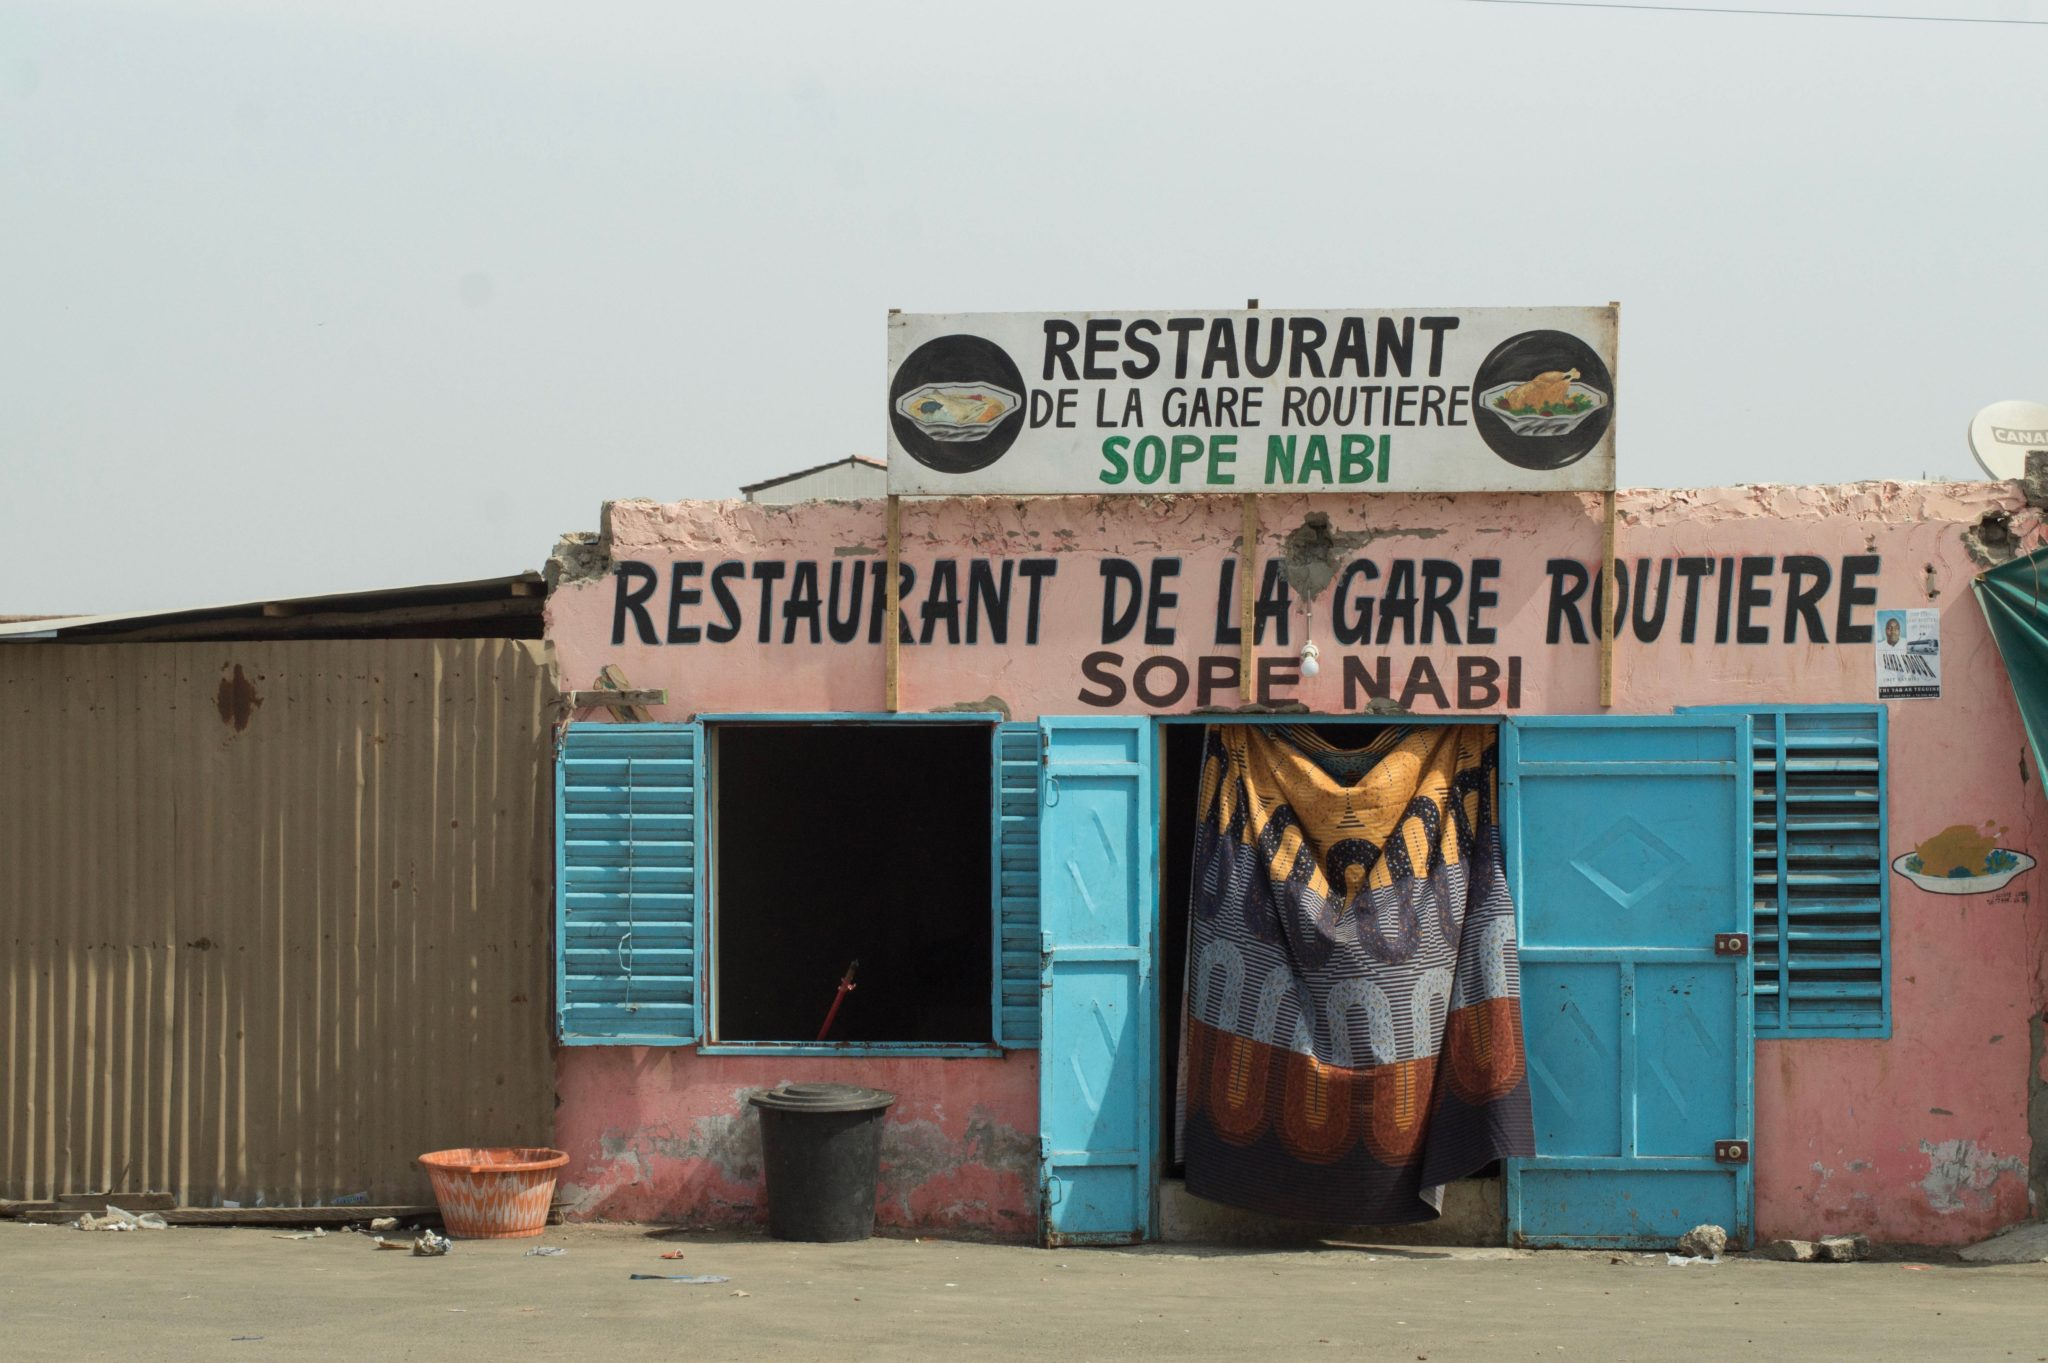 Senegal Travel Blog: Hungry? Restaurants in Senegal are simple but yummy.